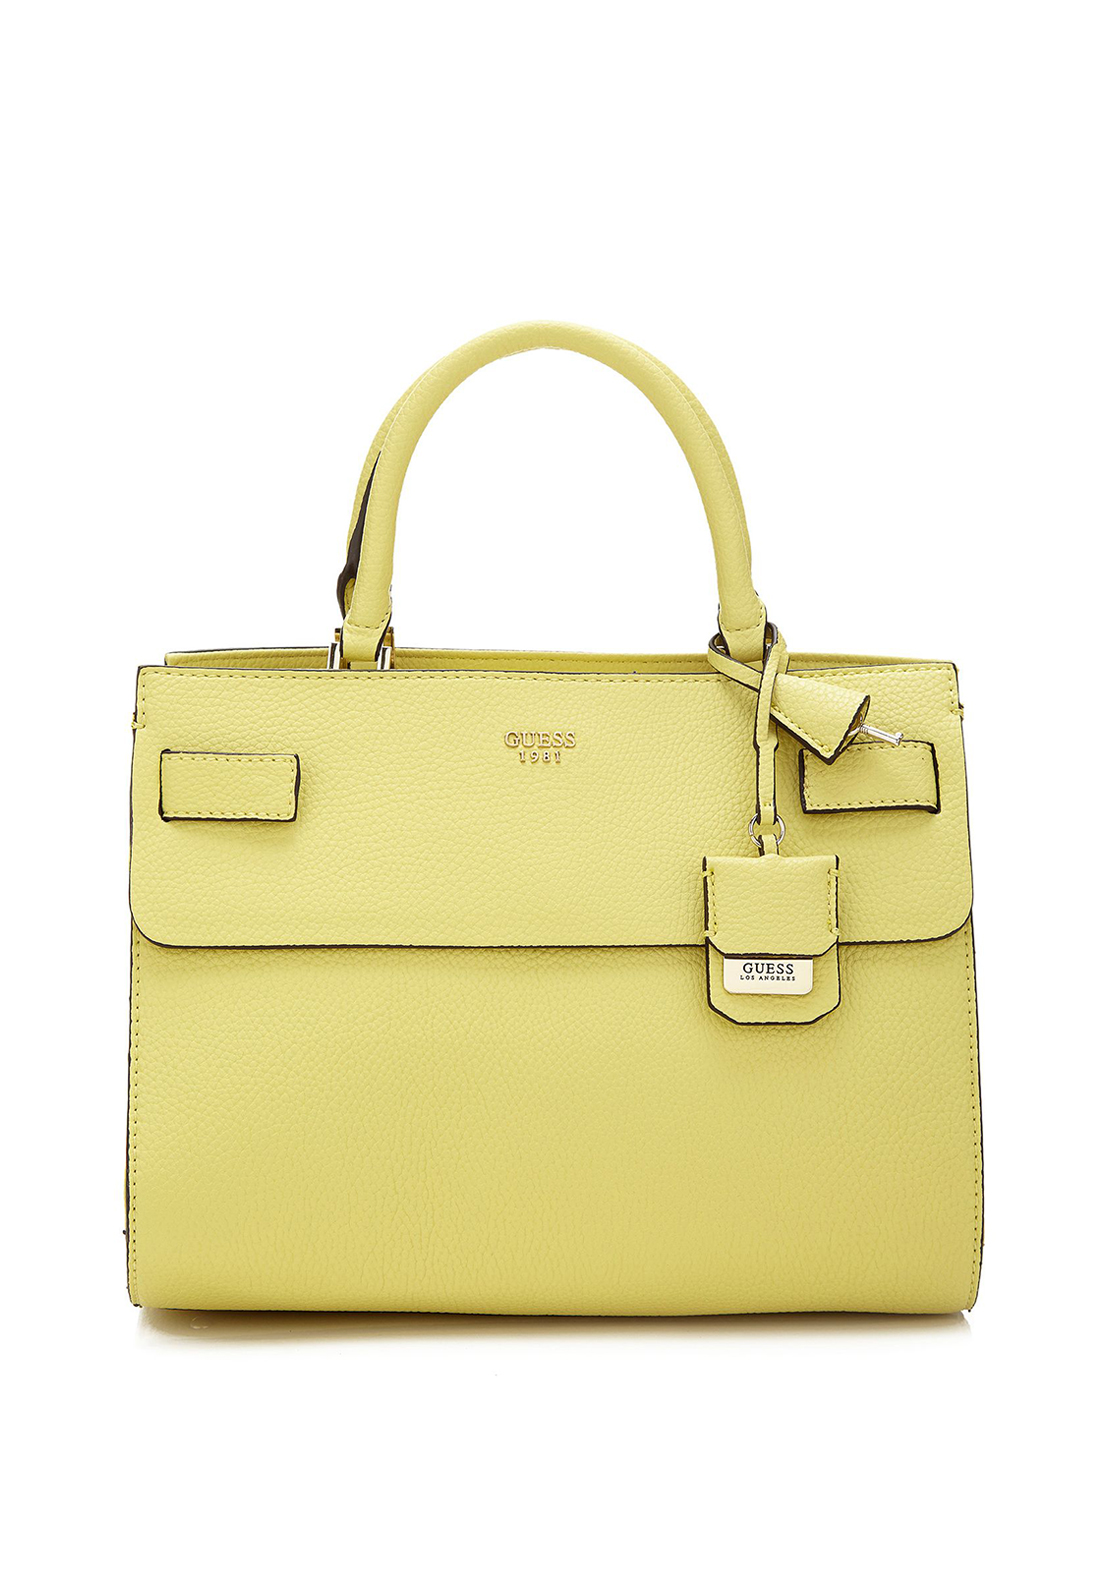 Guess Cate Tote Bag, Citron Lime Green